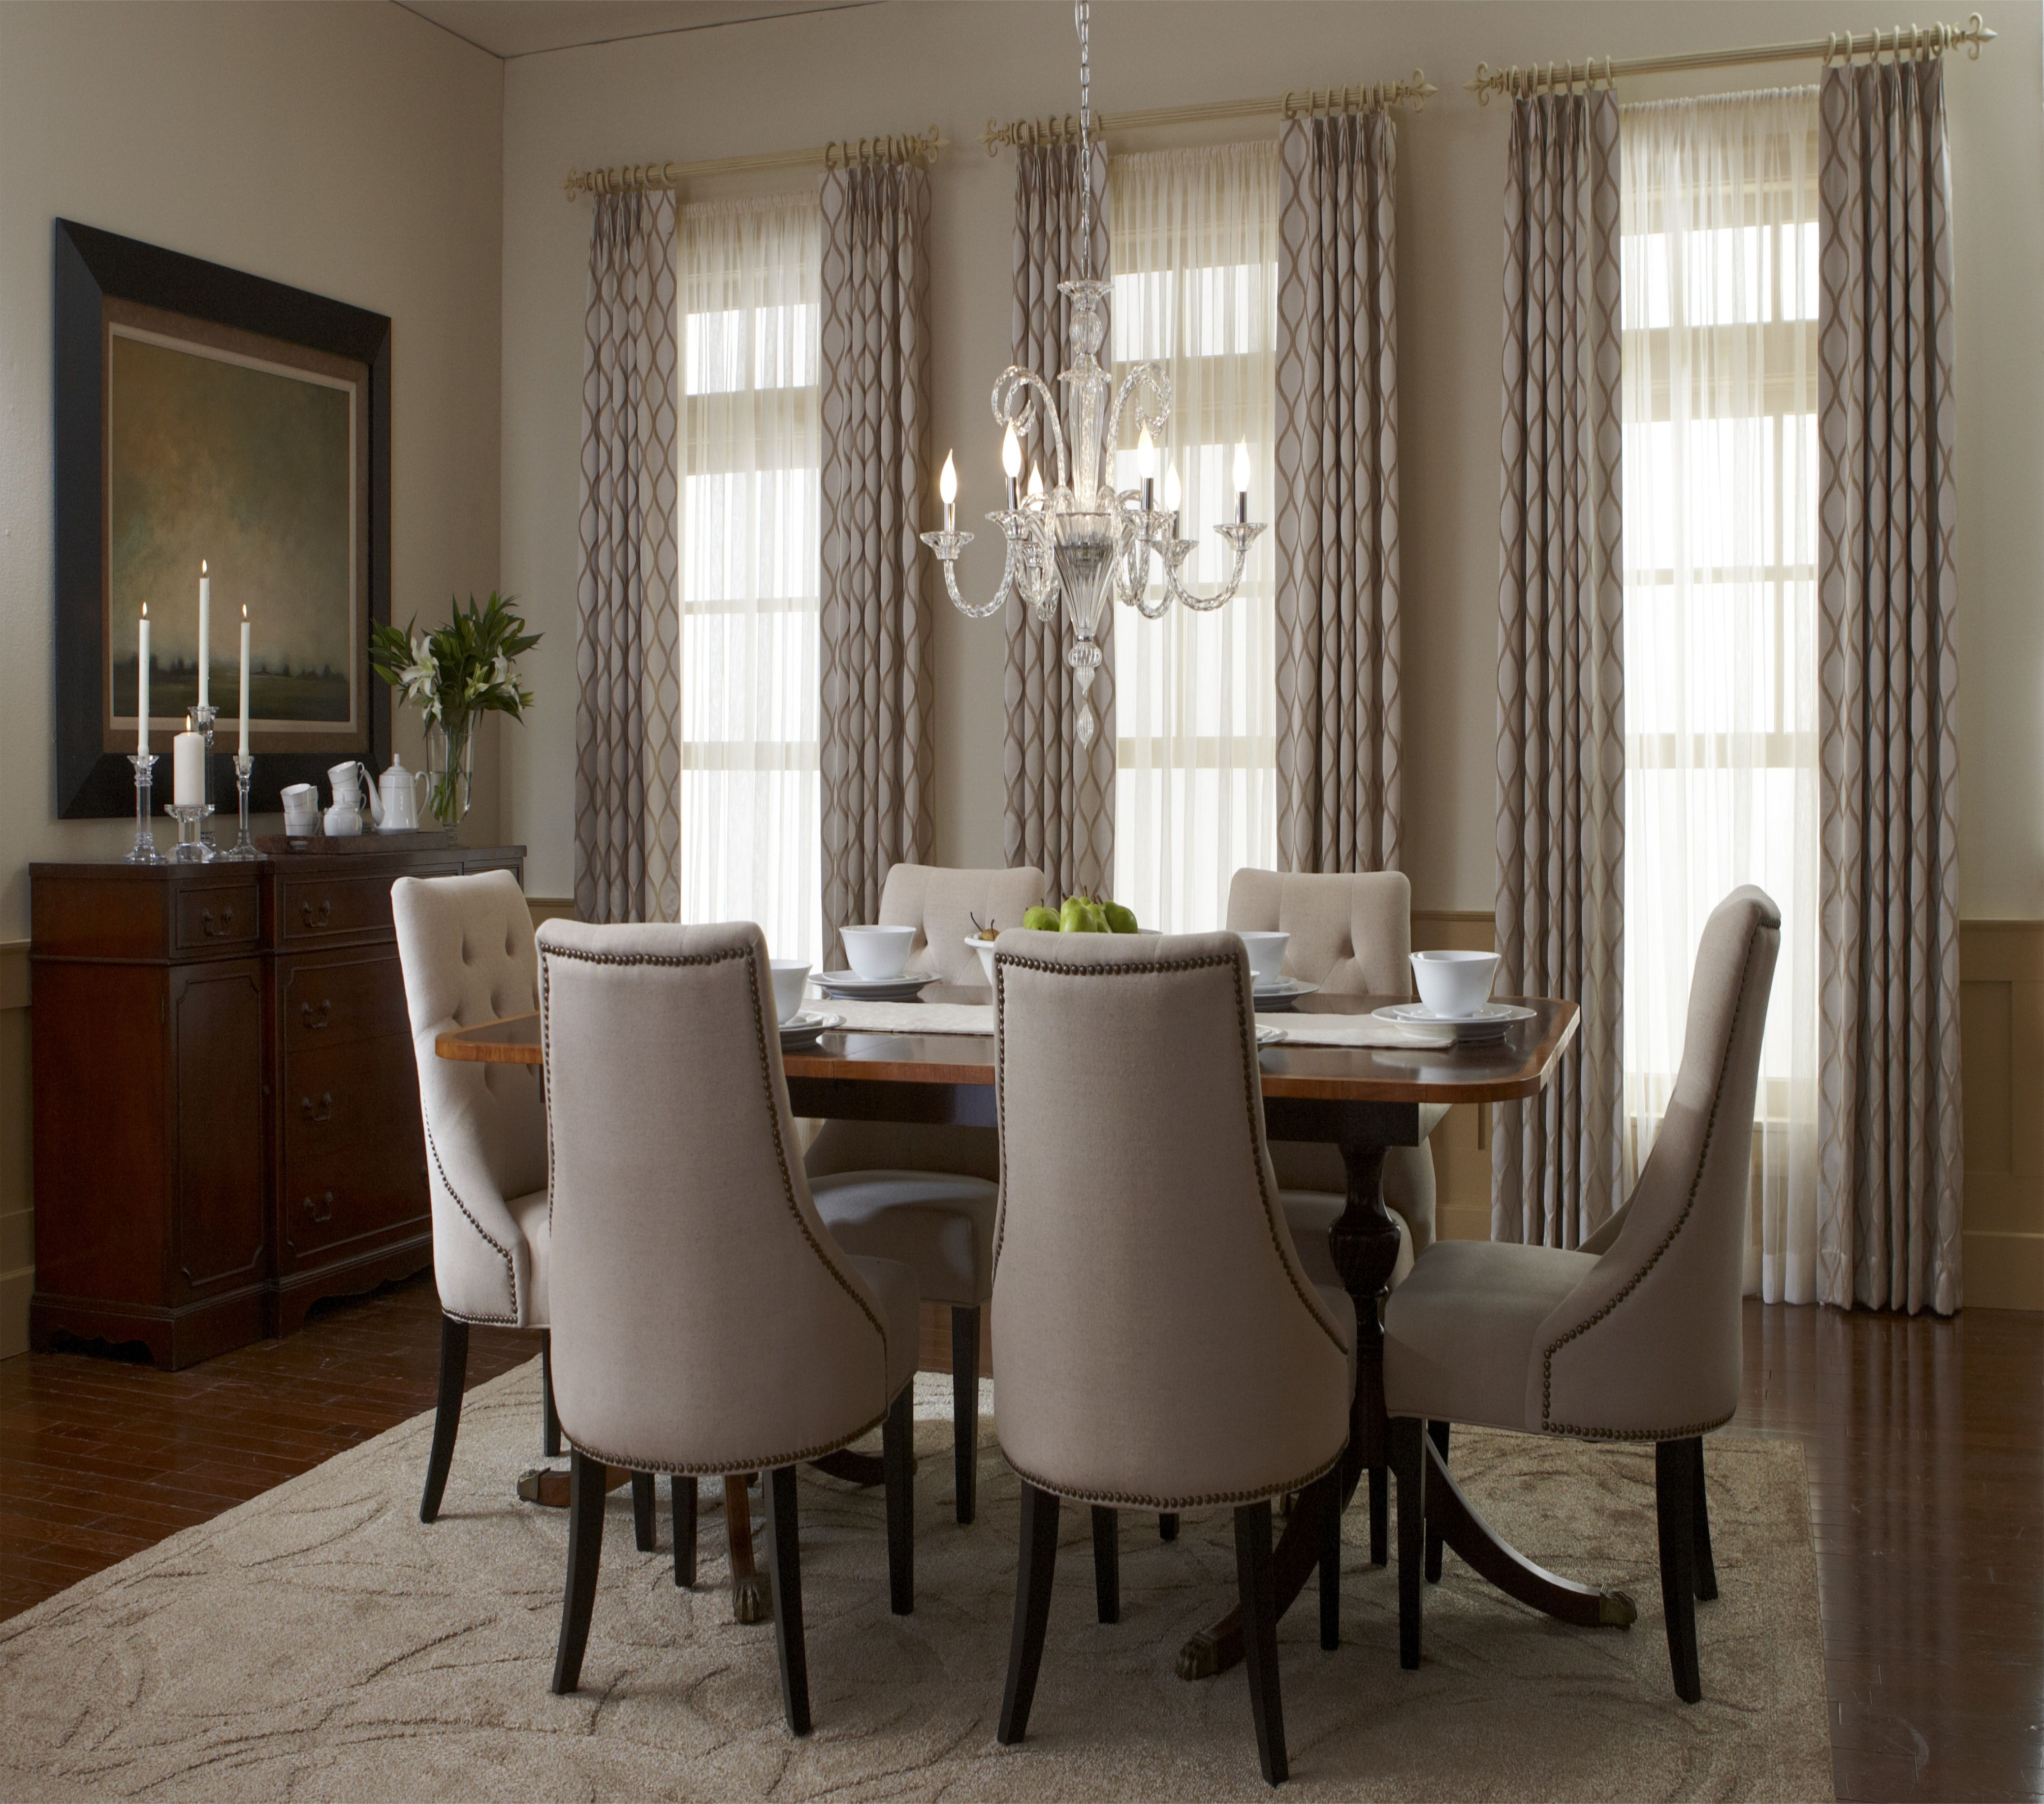 Adding Texture Or Prints Can Easily Provide More Interest To A Monochromatic Color Dining Room Windows Dining Room Window Treatments Traditional Dining Rooms